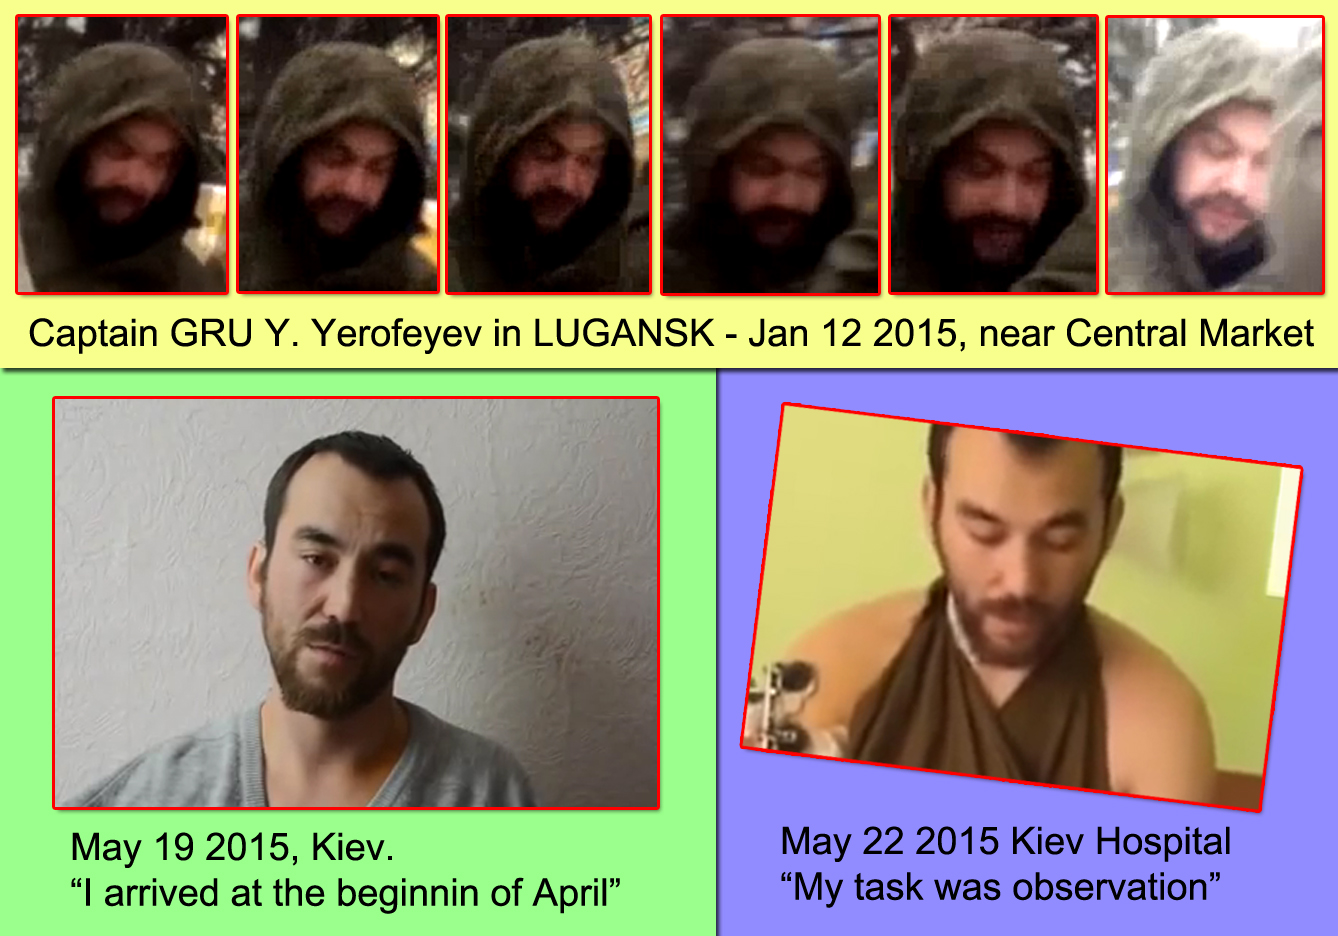 Russian GRU soldier Yevgeniy Yerofeyev identified on a video recorded in Lugansk on Jan 12 2015